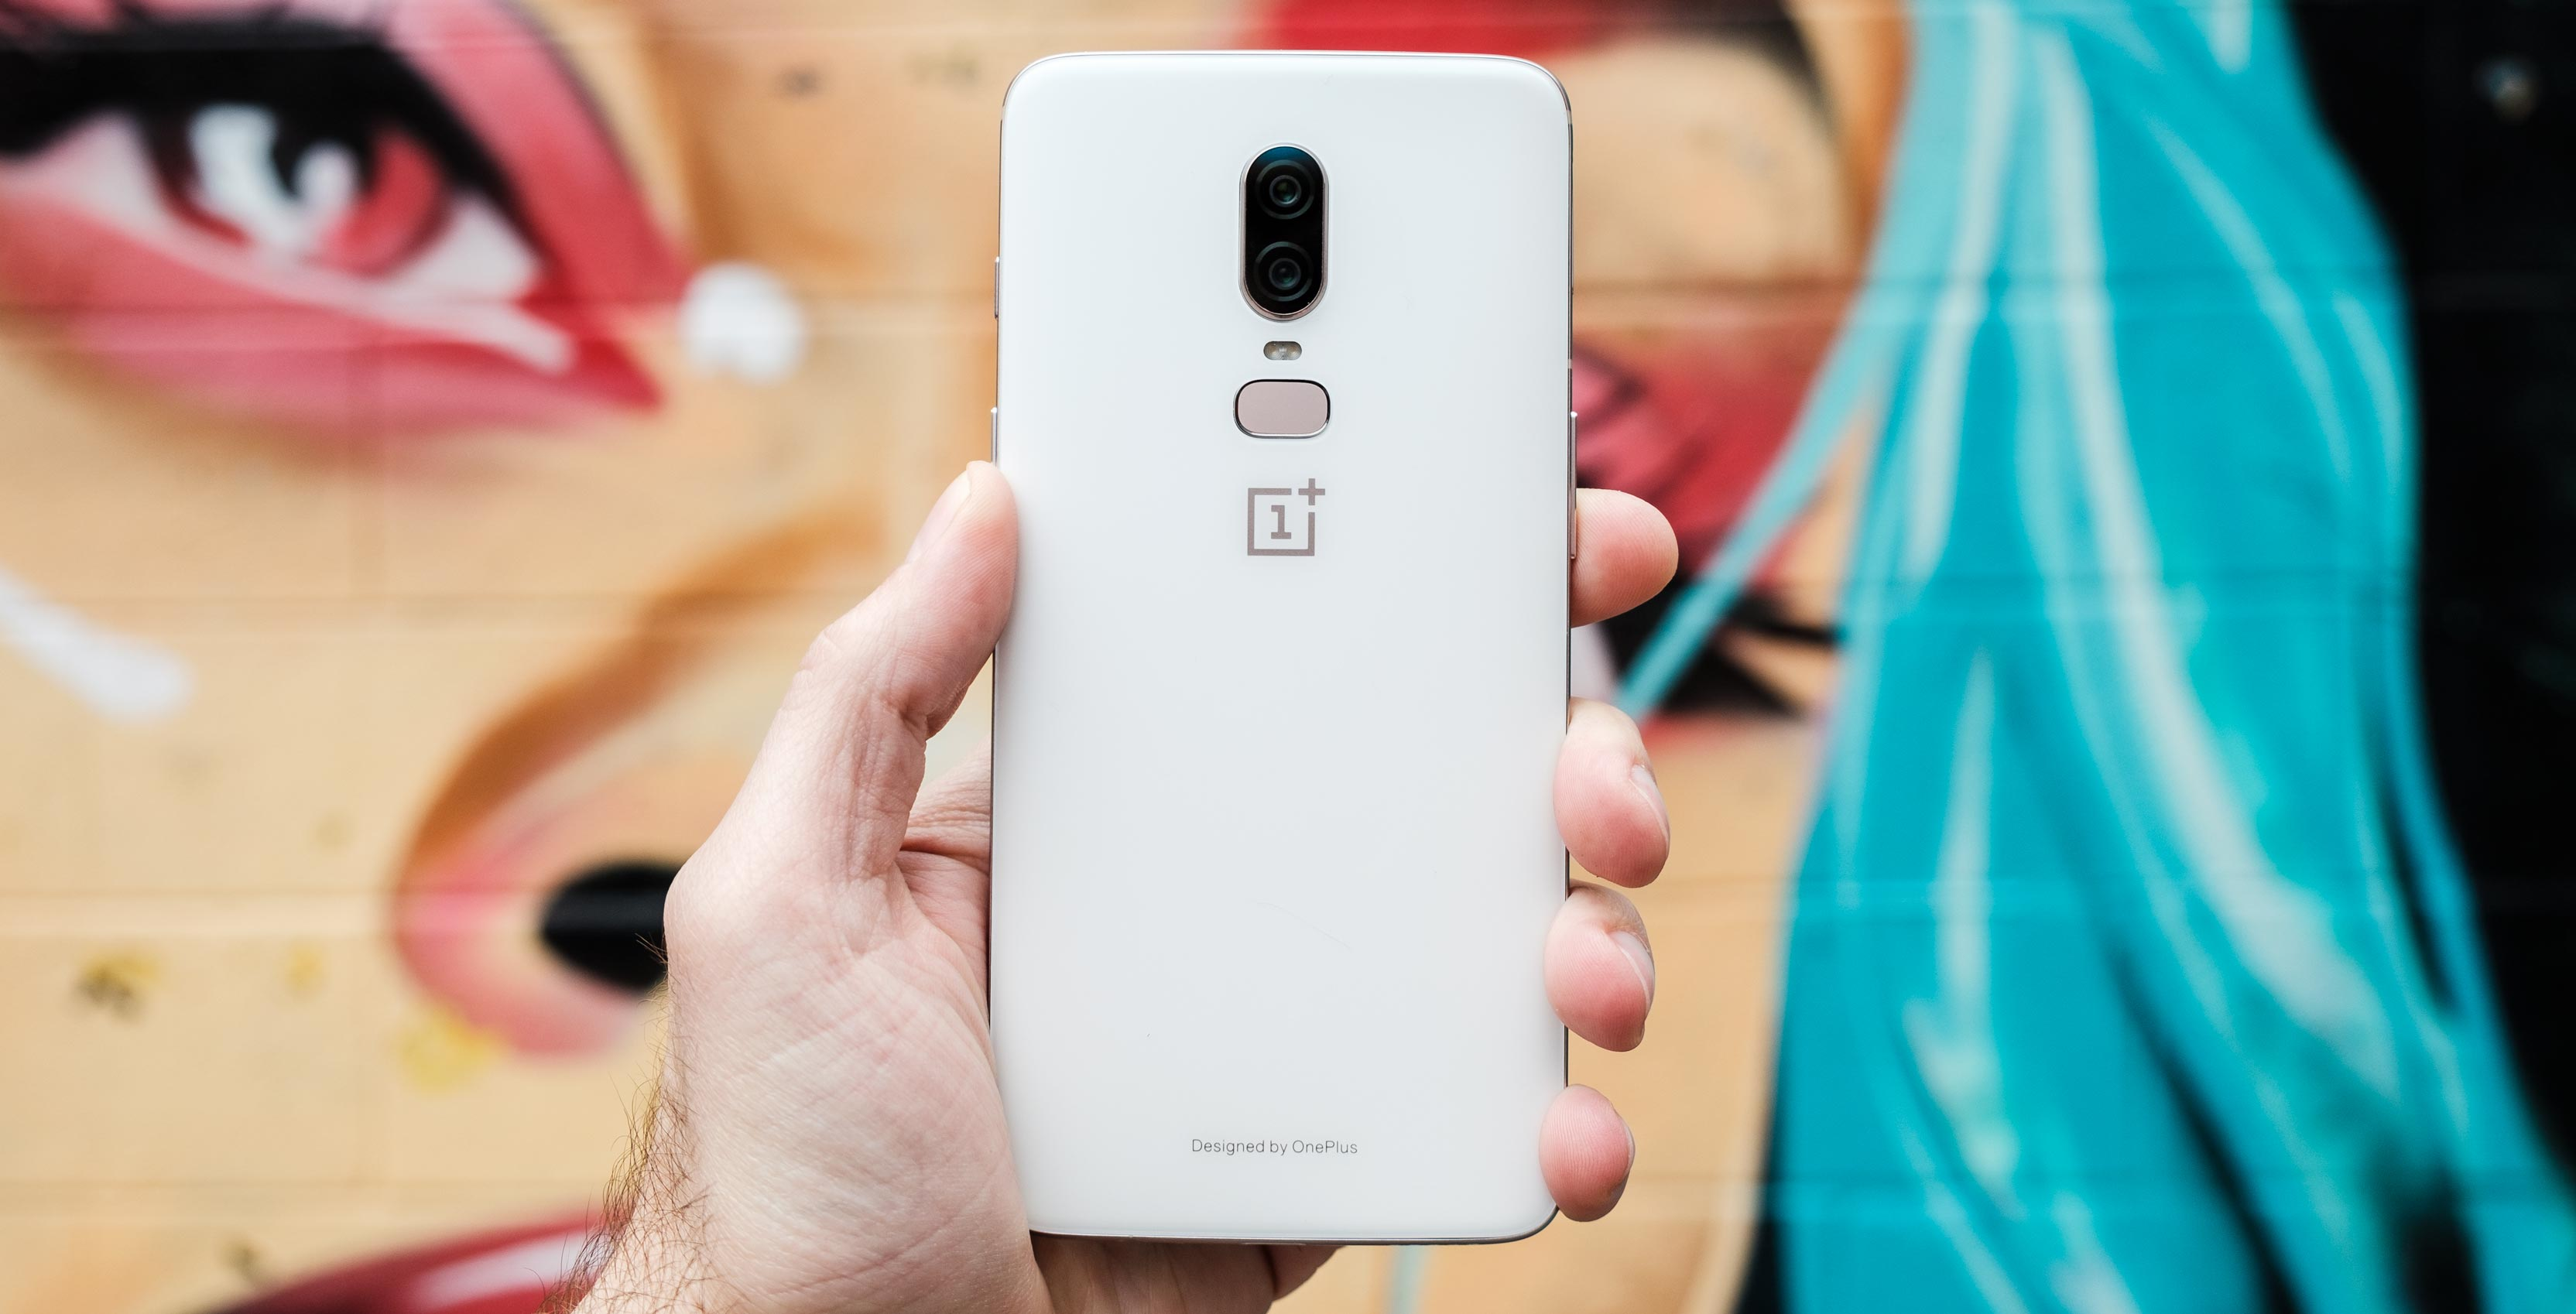 The OnePlus 6 is 'Silk White'